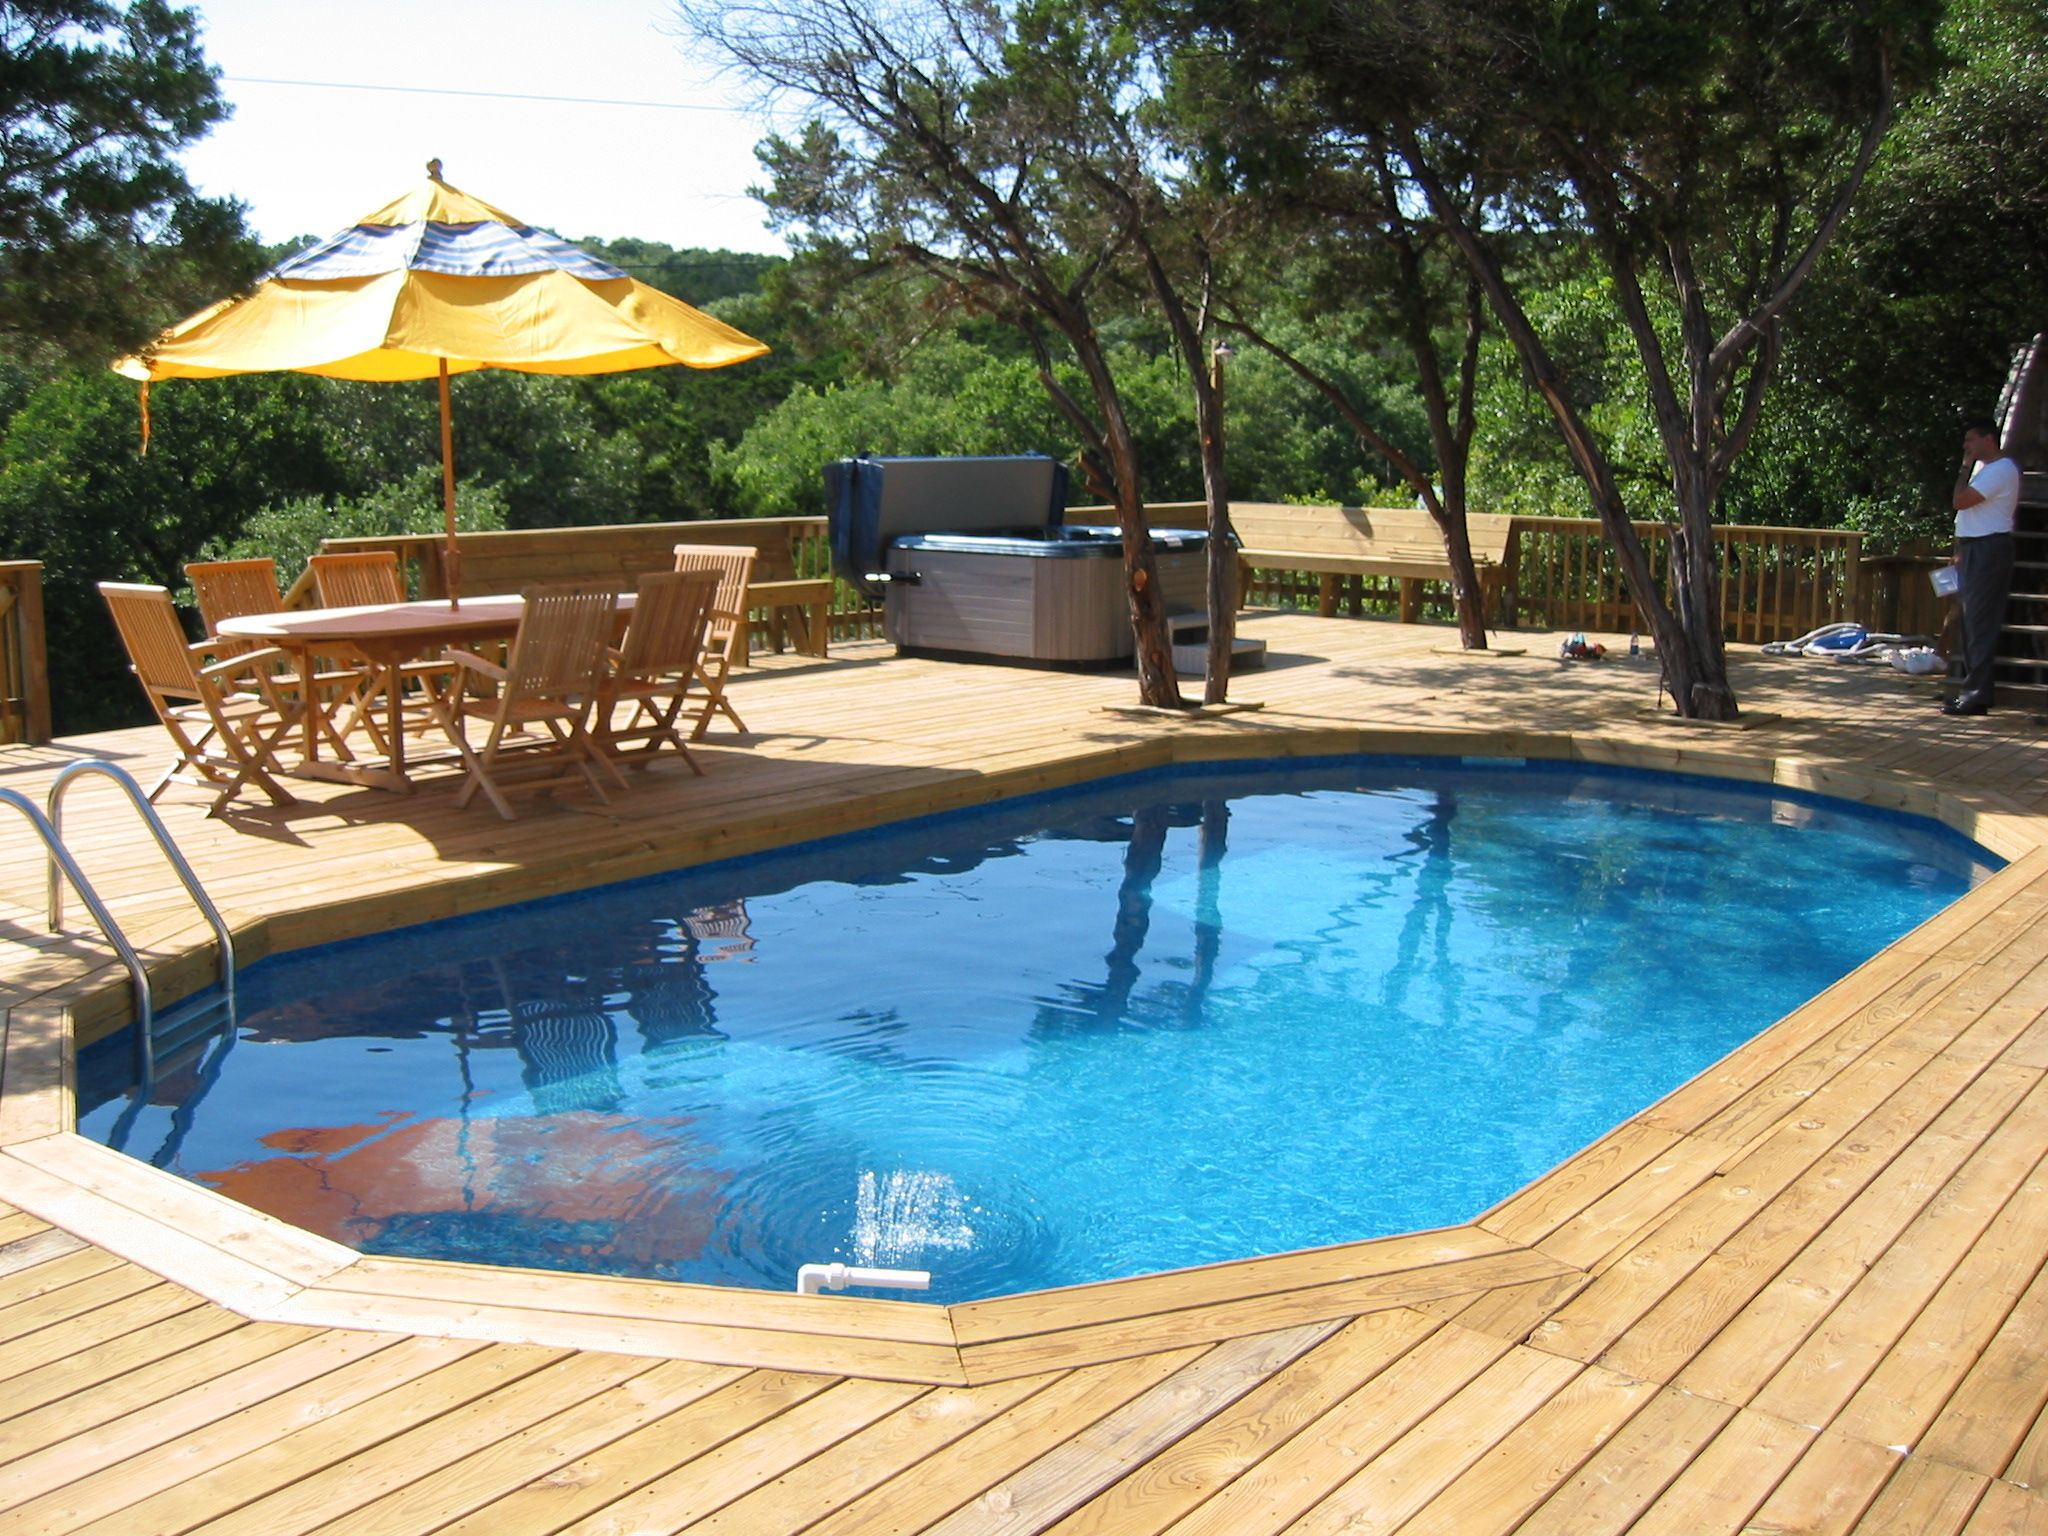 Above ground pools for sale for my above ground pool - Swimming pools above ground for sale ...